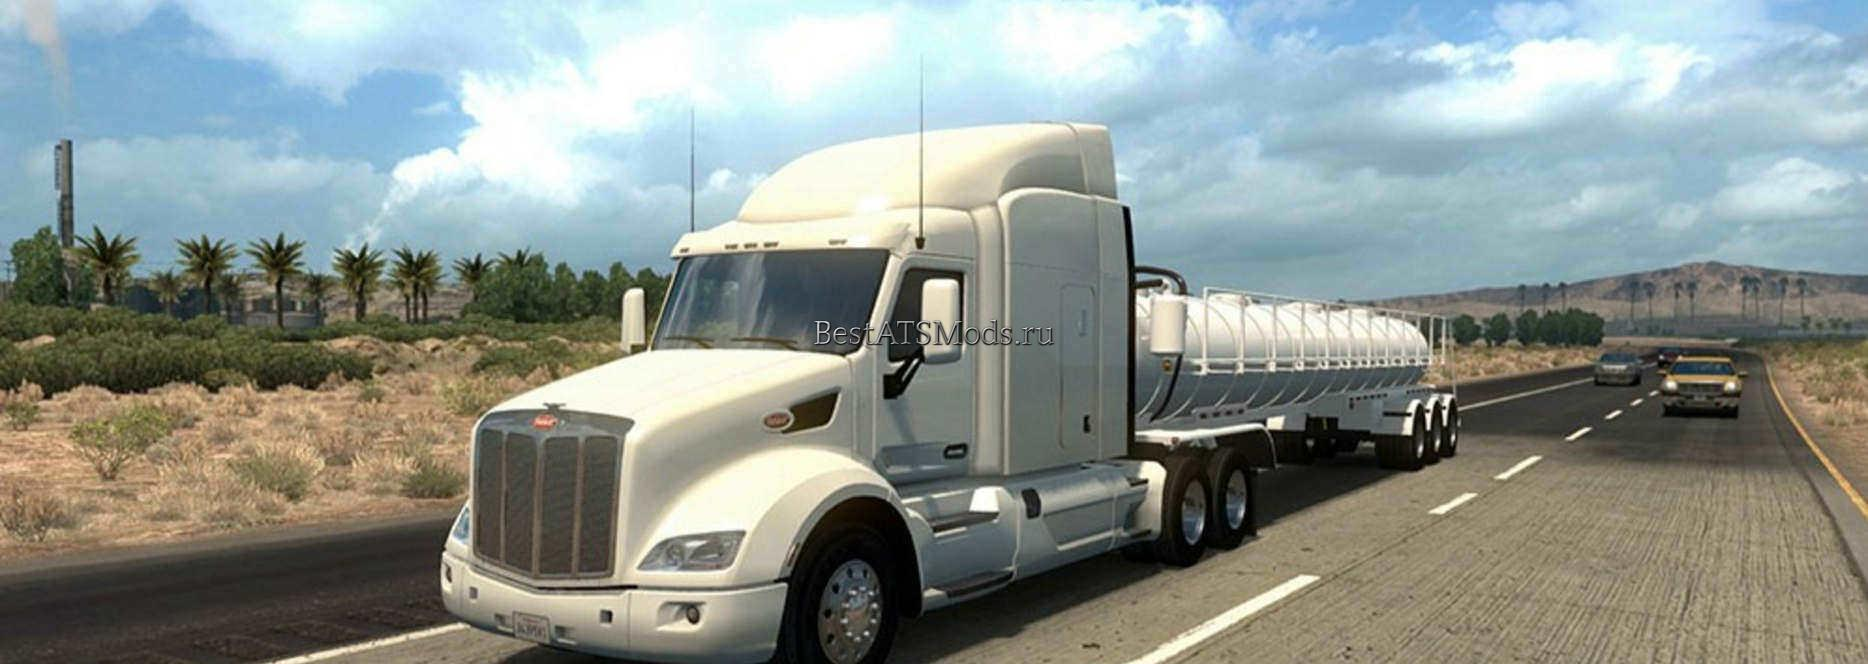 rsz_Мод_прицеп_durahaul_water_trailer_for_american_truck_simulator